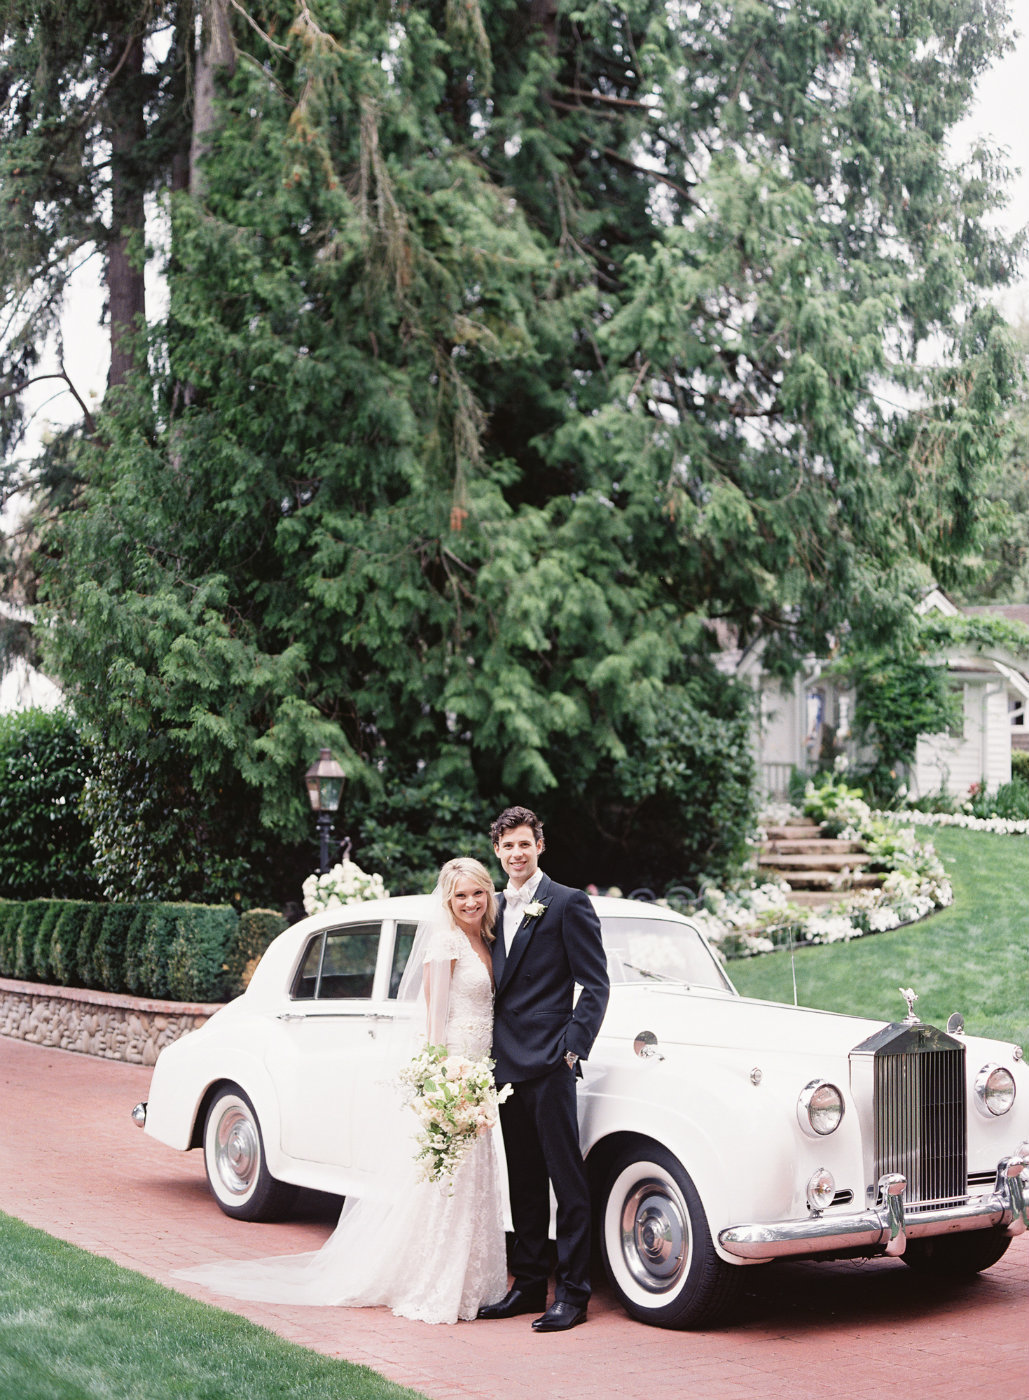 Luxury garden wedding with vintage car.